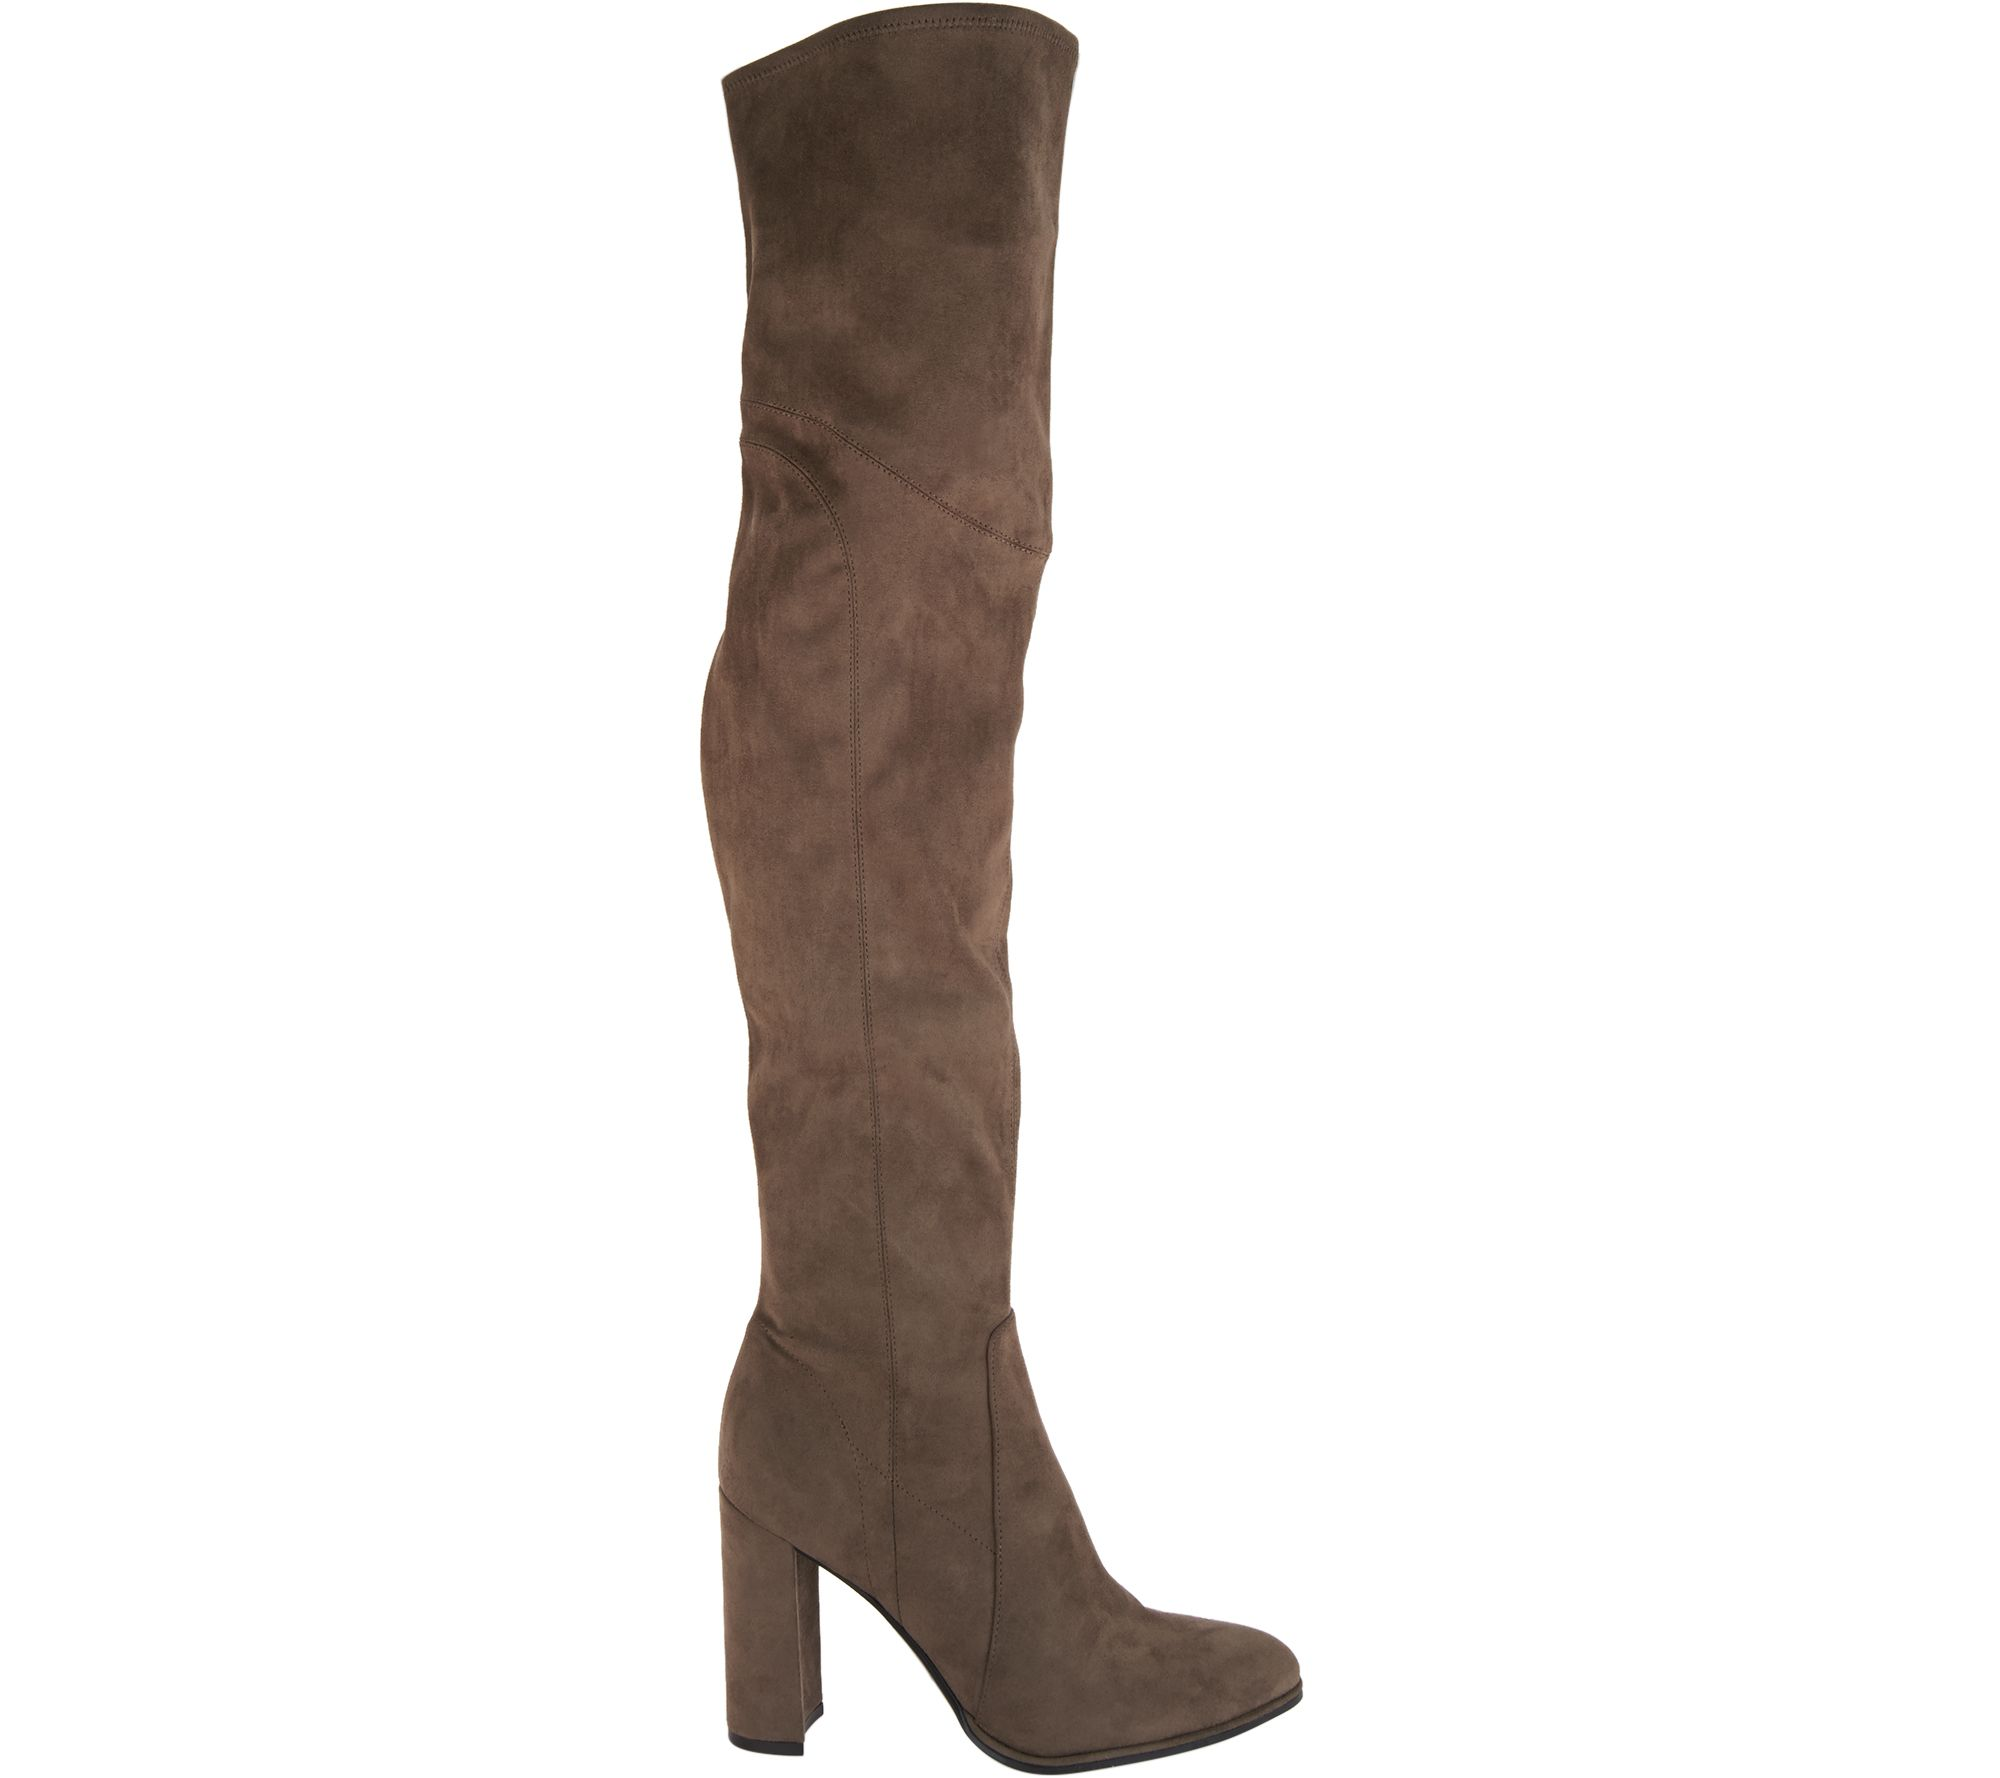 c455628b027 Marc Fisher Faux Suede or Glitter Fabric Thigh High Boots - Nella - Page 1  — QVC.com